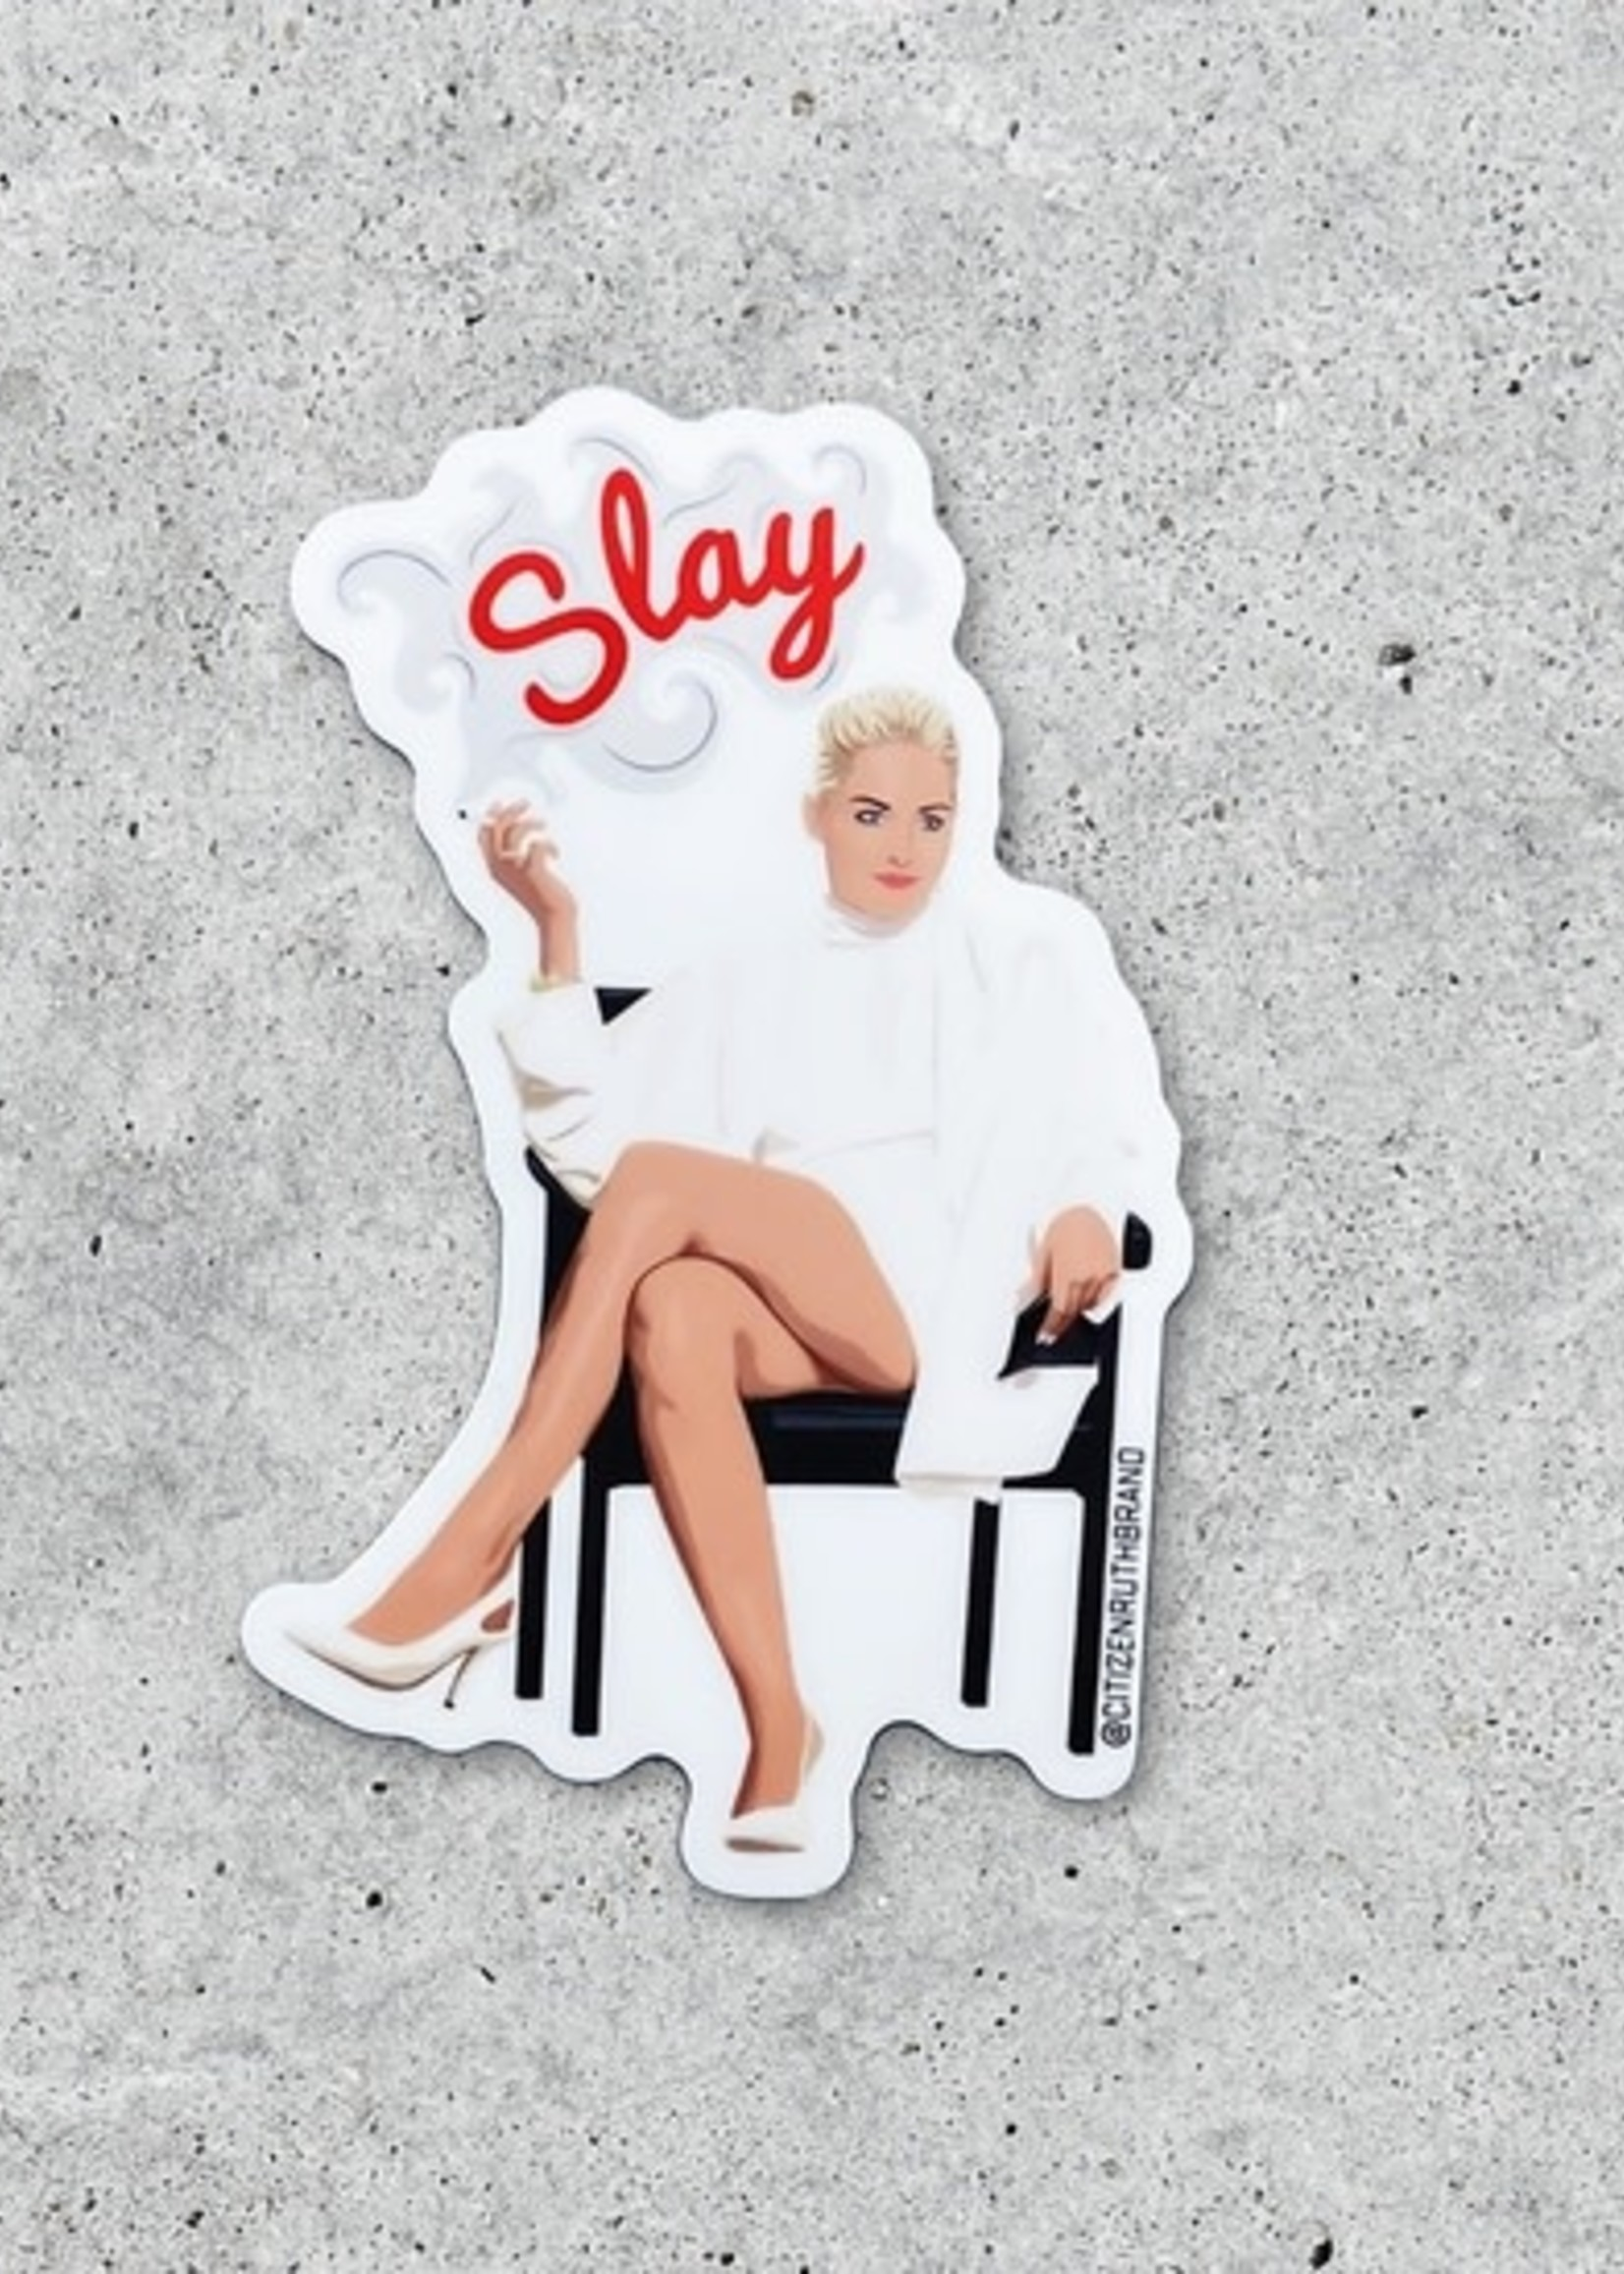 CITIZEN RUTH CITIZEN RUTH BASIC INSTINCT SLAY STICKER